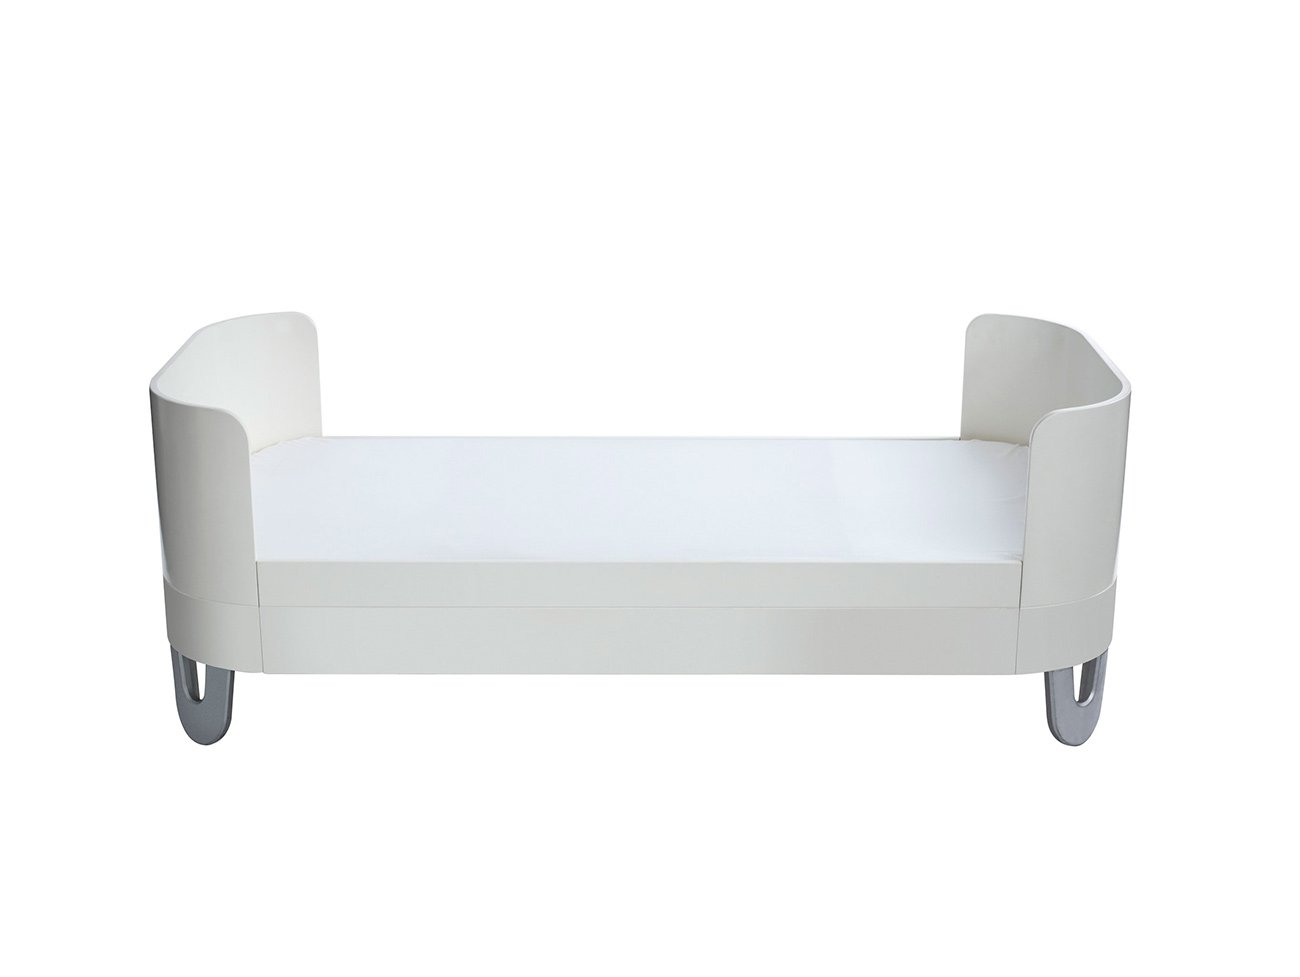 Serena Junior Bed Extension - All White